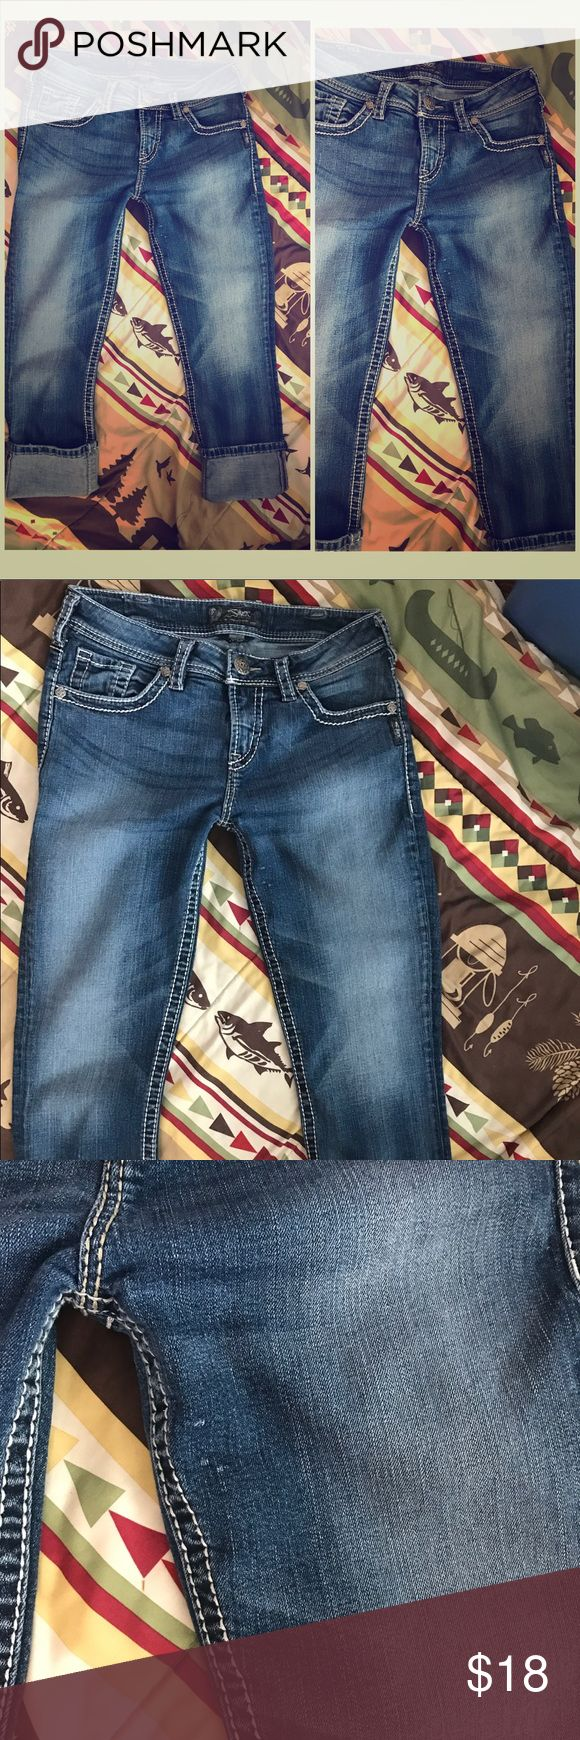 """Women's Silver Jeans NATSUKI Capri Sz W30 Silver Jeans Size W30 """"NATSUKI"""" Capri. In good used condition. Note there is a small area on one of the thighs that has an imperfection. It does not go all the way through the jeans- just a snag so to say.  Otherwise no rips, stains, etc!  Bundle with other jeans and Save ~ Use offer button- open to all reasonable offers on Bundles!! Silver Jeans Jeans Straight Leg"""